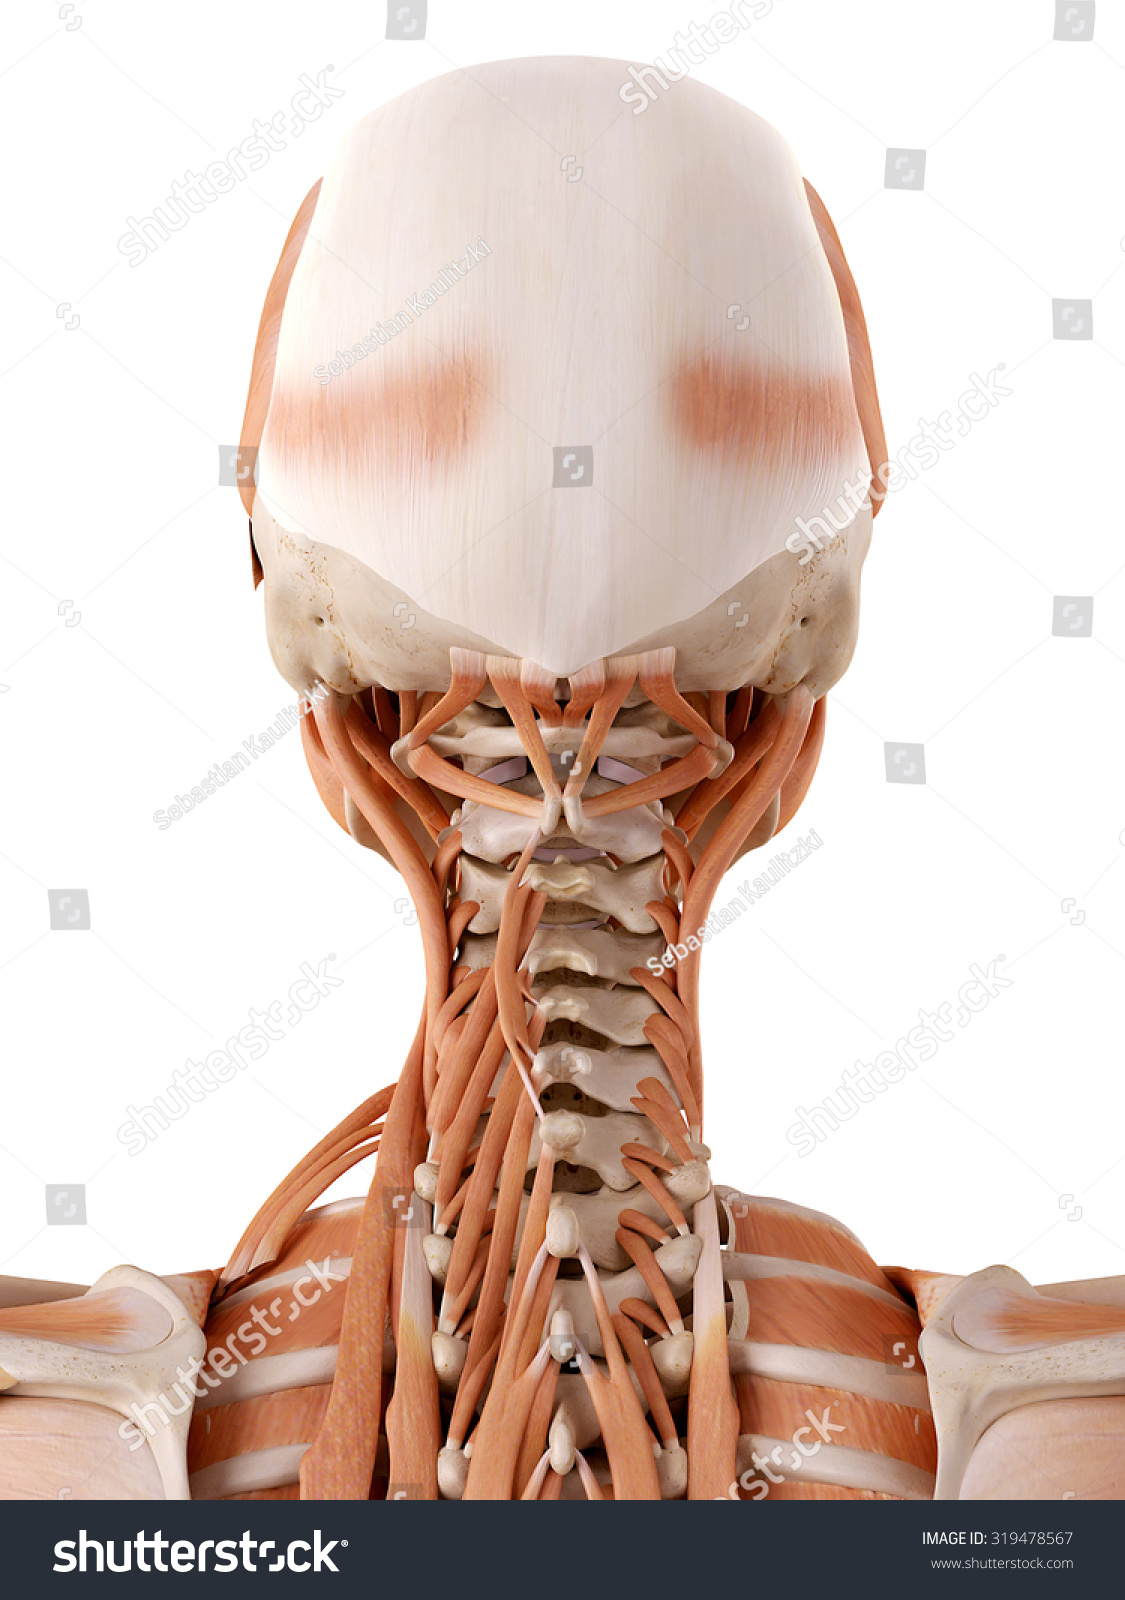 Medically Accurate Anatomy Illustration Neck Muscles Stock